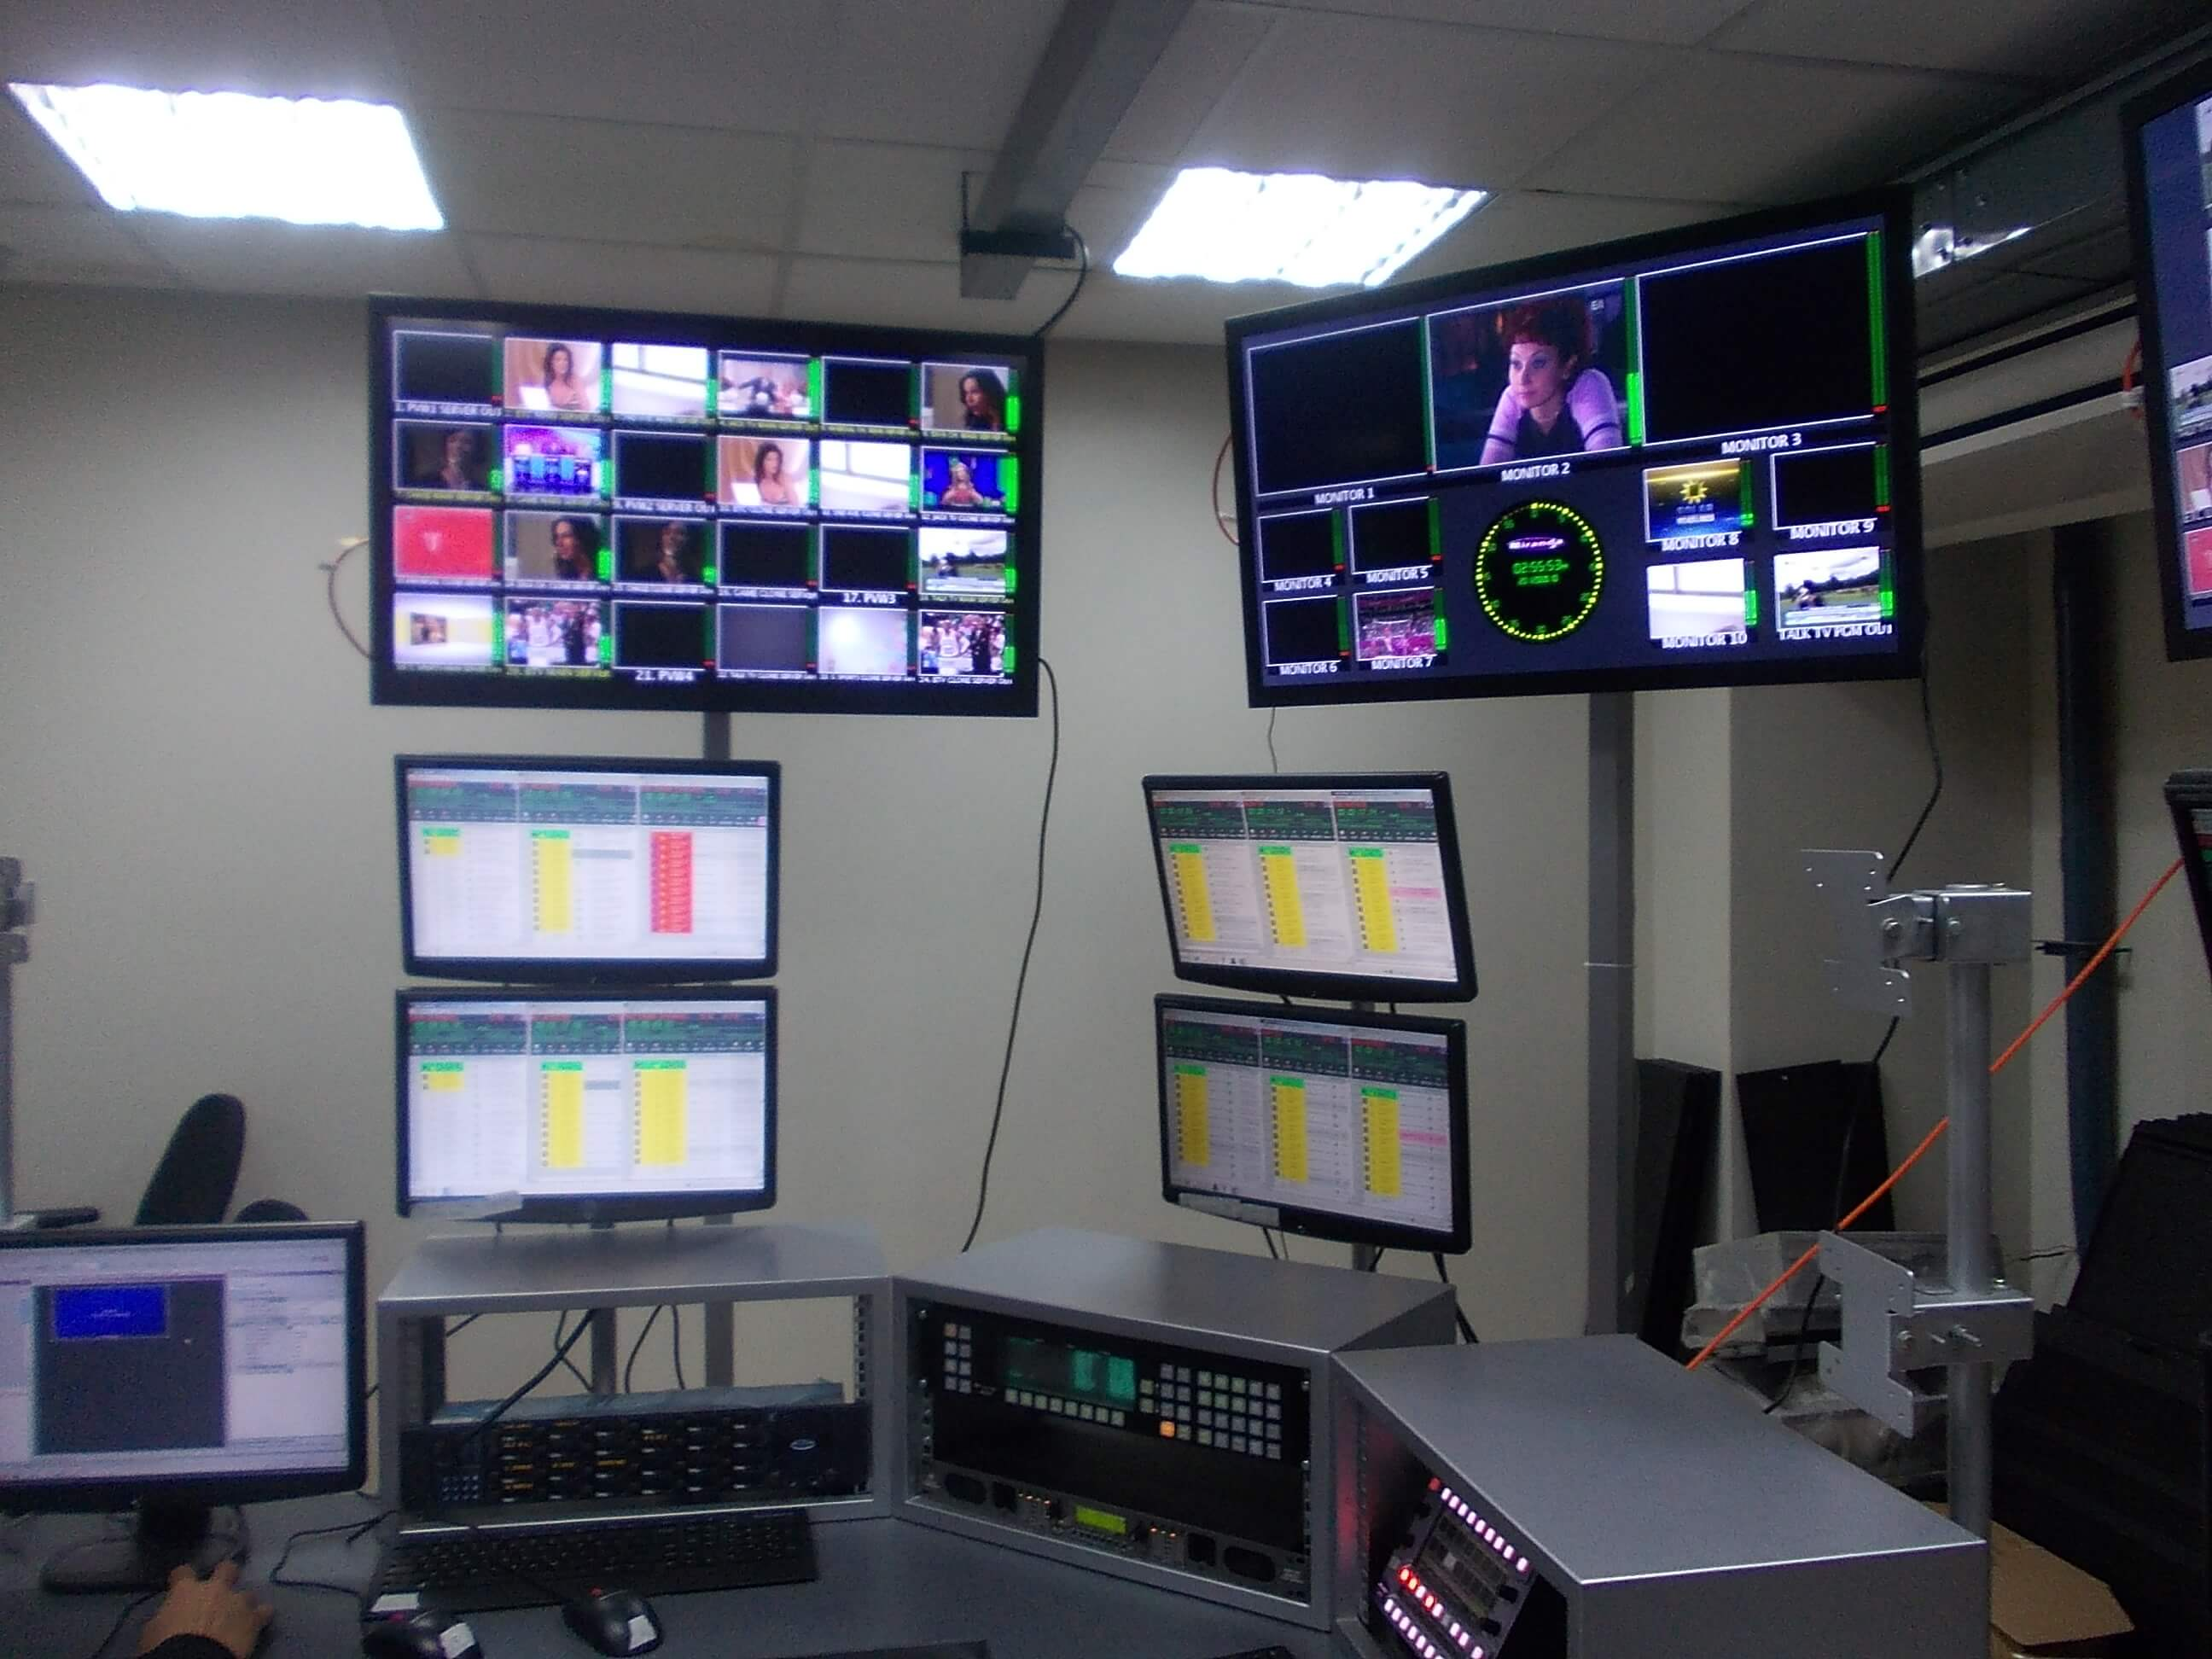 Future master control room pictures to pin on pinterest for Futuristic control room